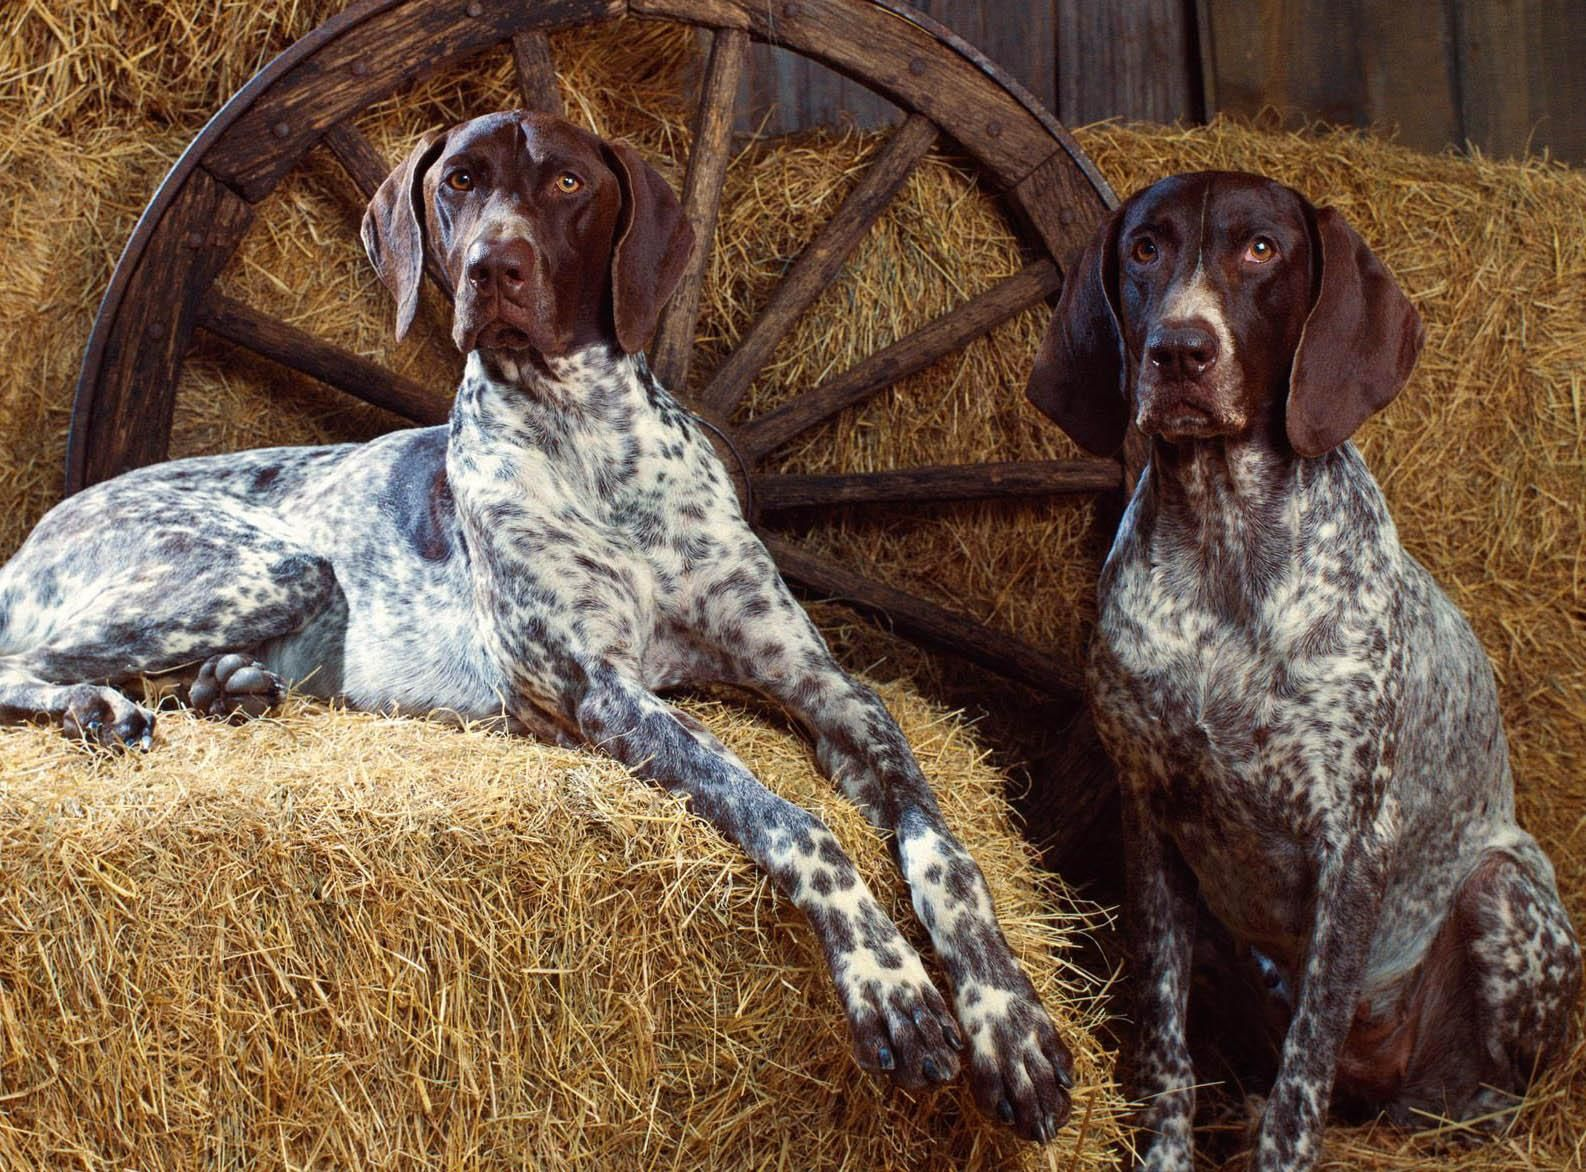 pin said blue tick hound, which is wrong, these are a fine